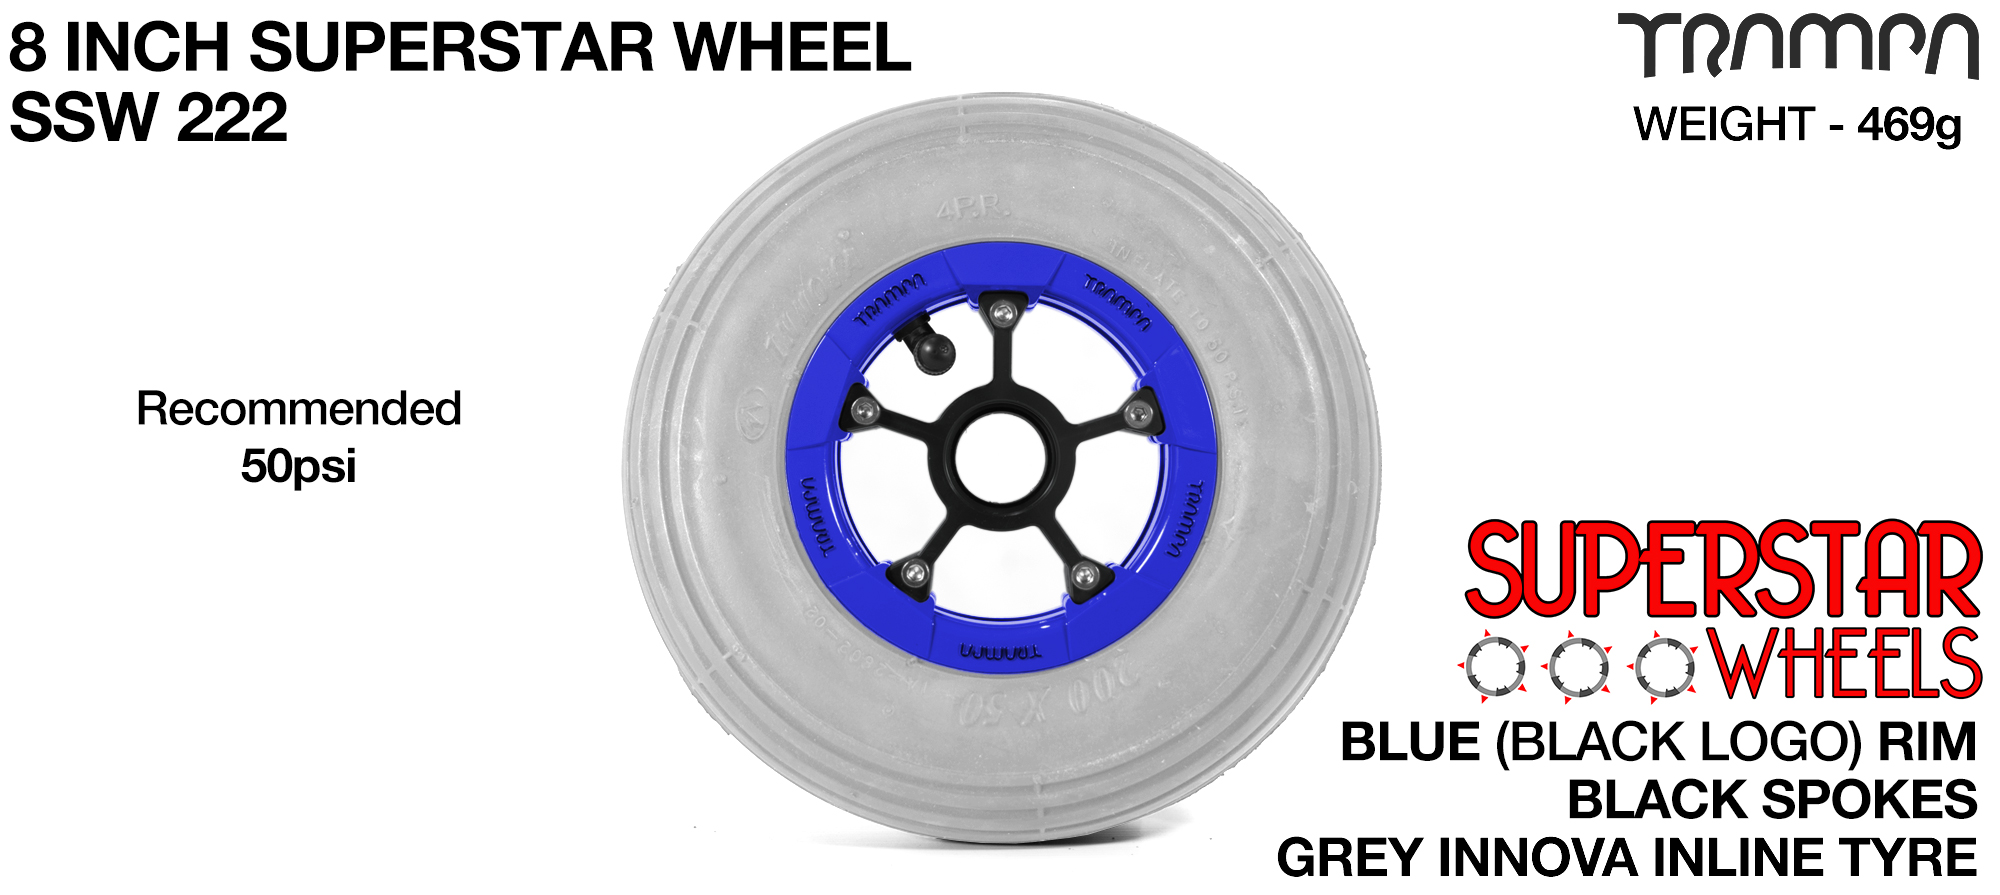 Superstar 8 Inch Wheel - Blue Superstar Rim Black Anodised Spokes & Grey 8 Inch Inline Tyre (COPY)